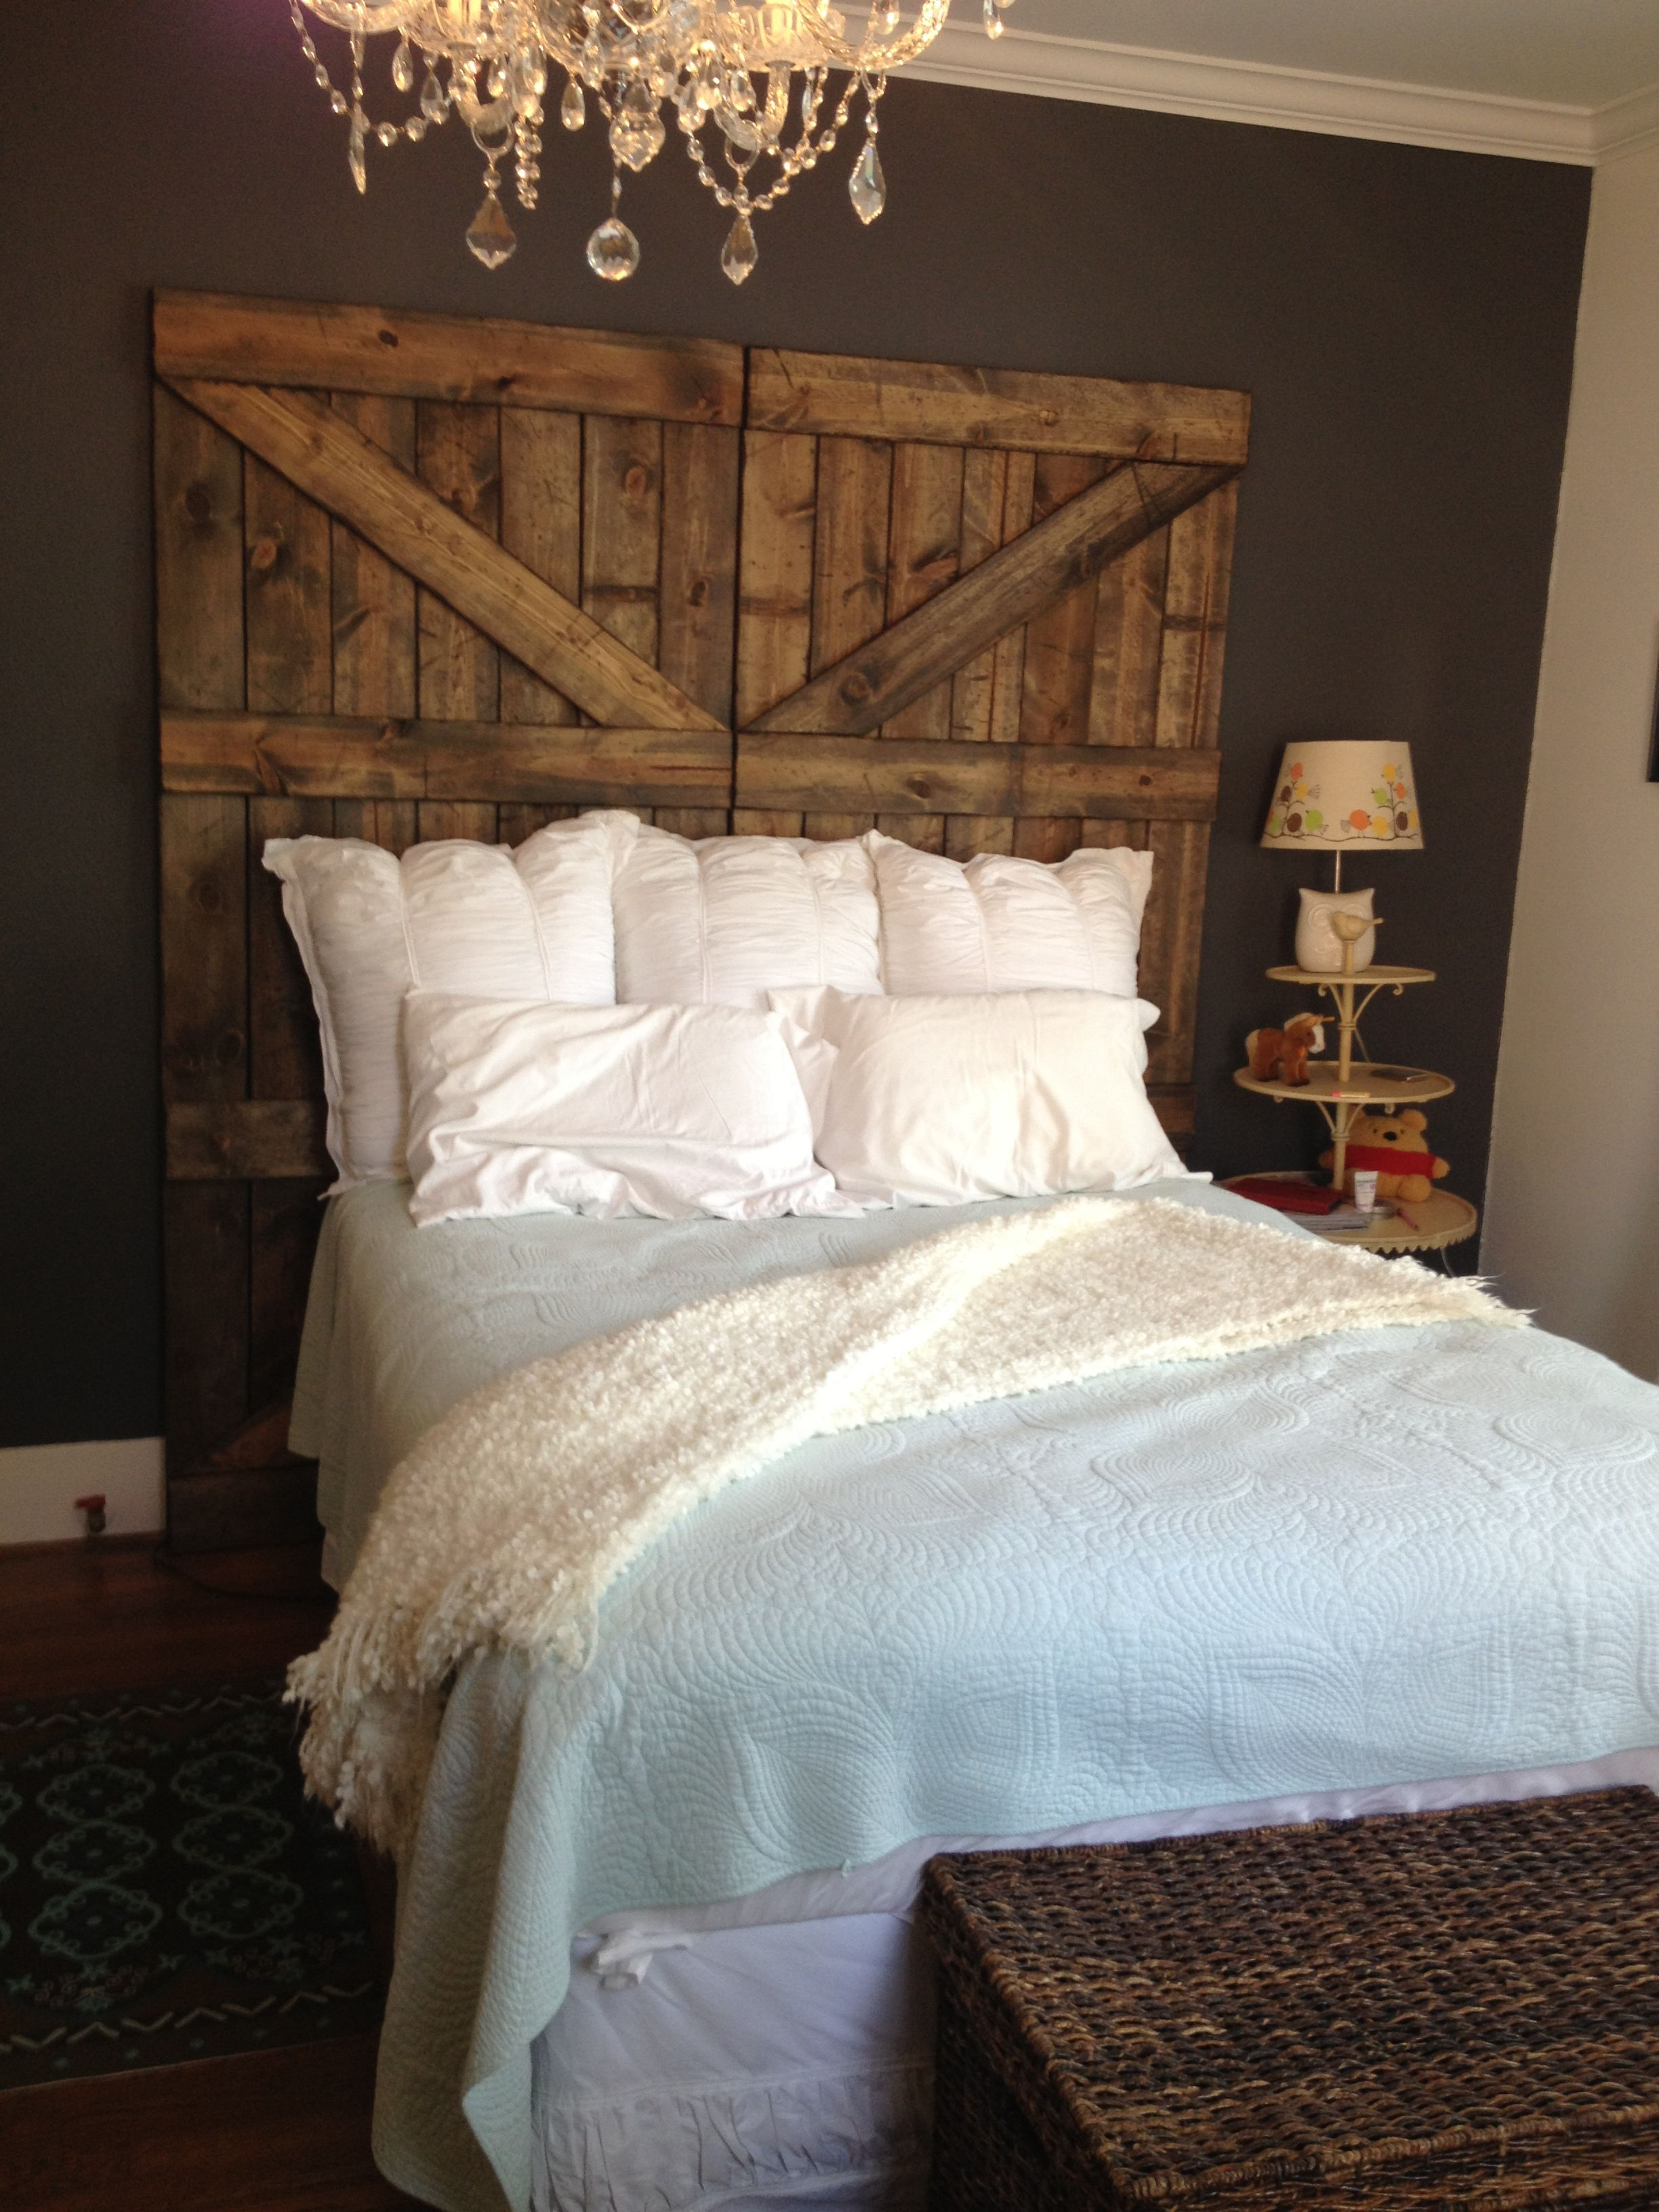 AuBergewohnlich King Size Bettwäsche · Handgefertigte Kopfteile · Barn Door Headboard.  Inspired By Pinterest, Built By Boyfriend. Rentovations.weebly.